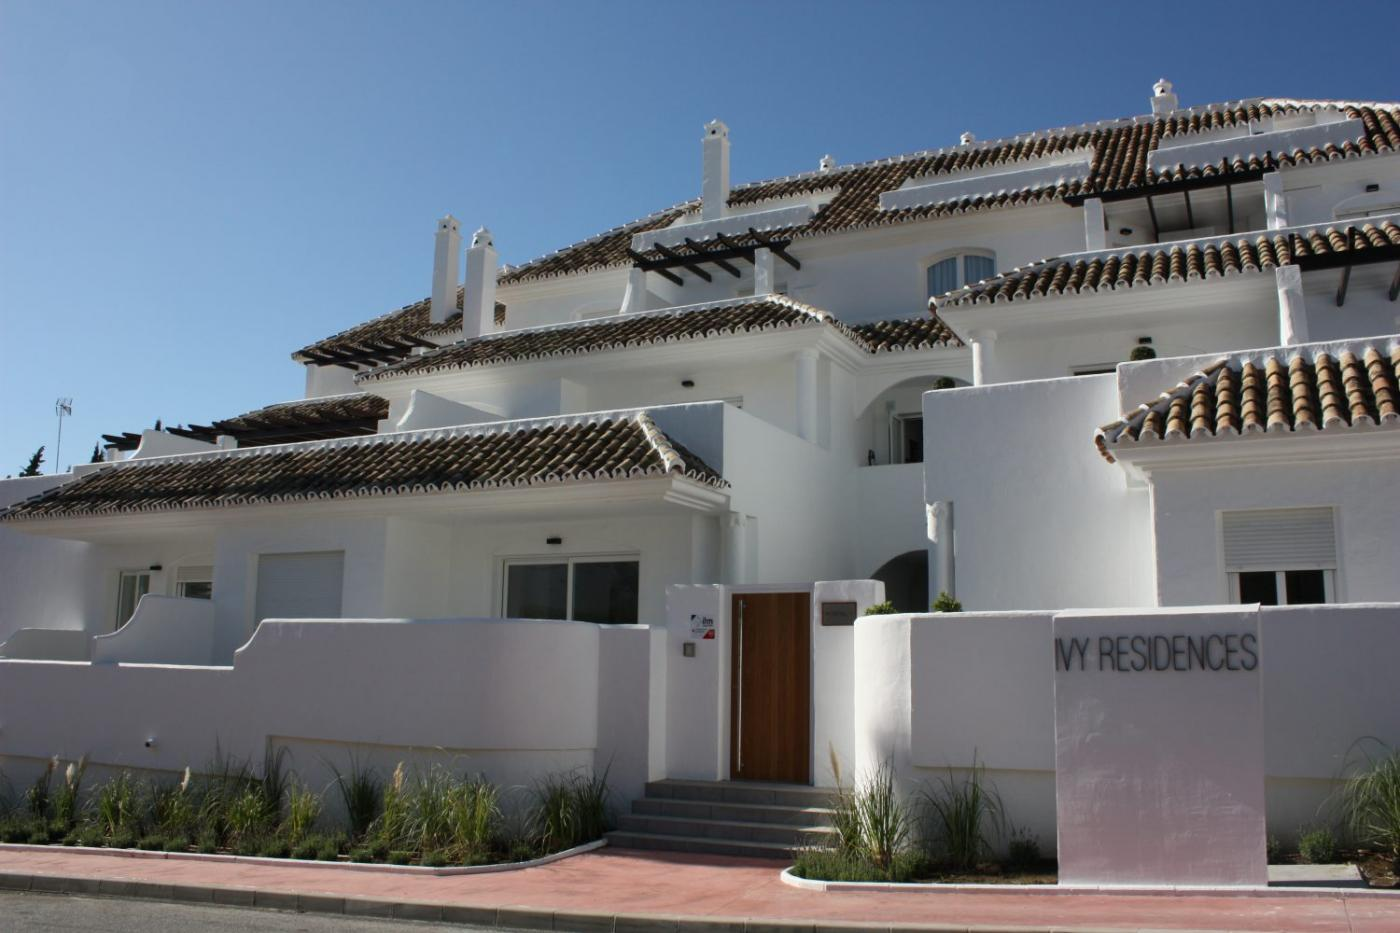 1 Bedroom Apartment for Sale in Marbella |